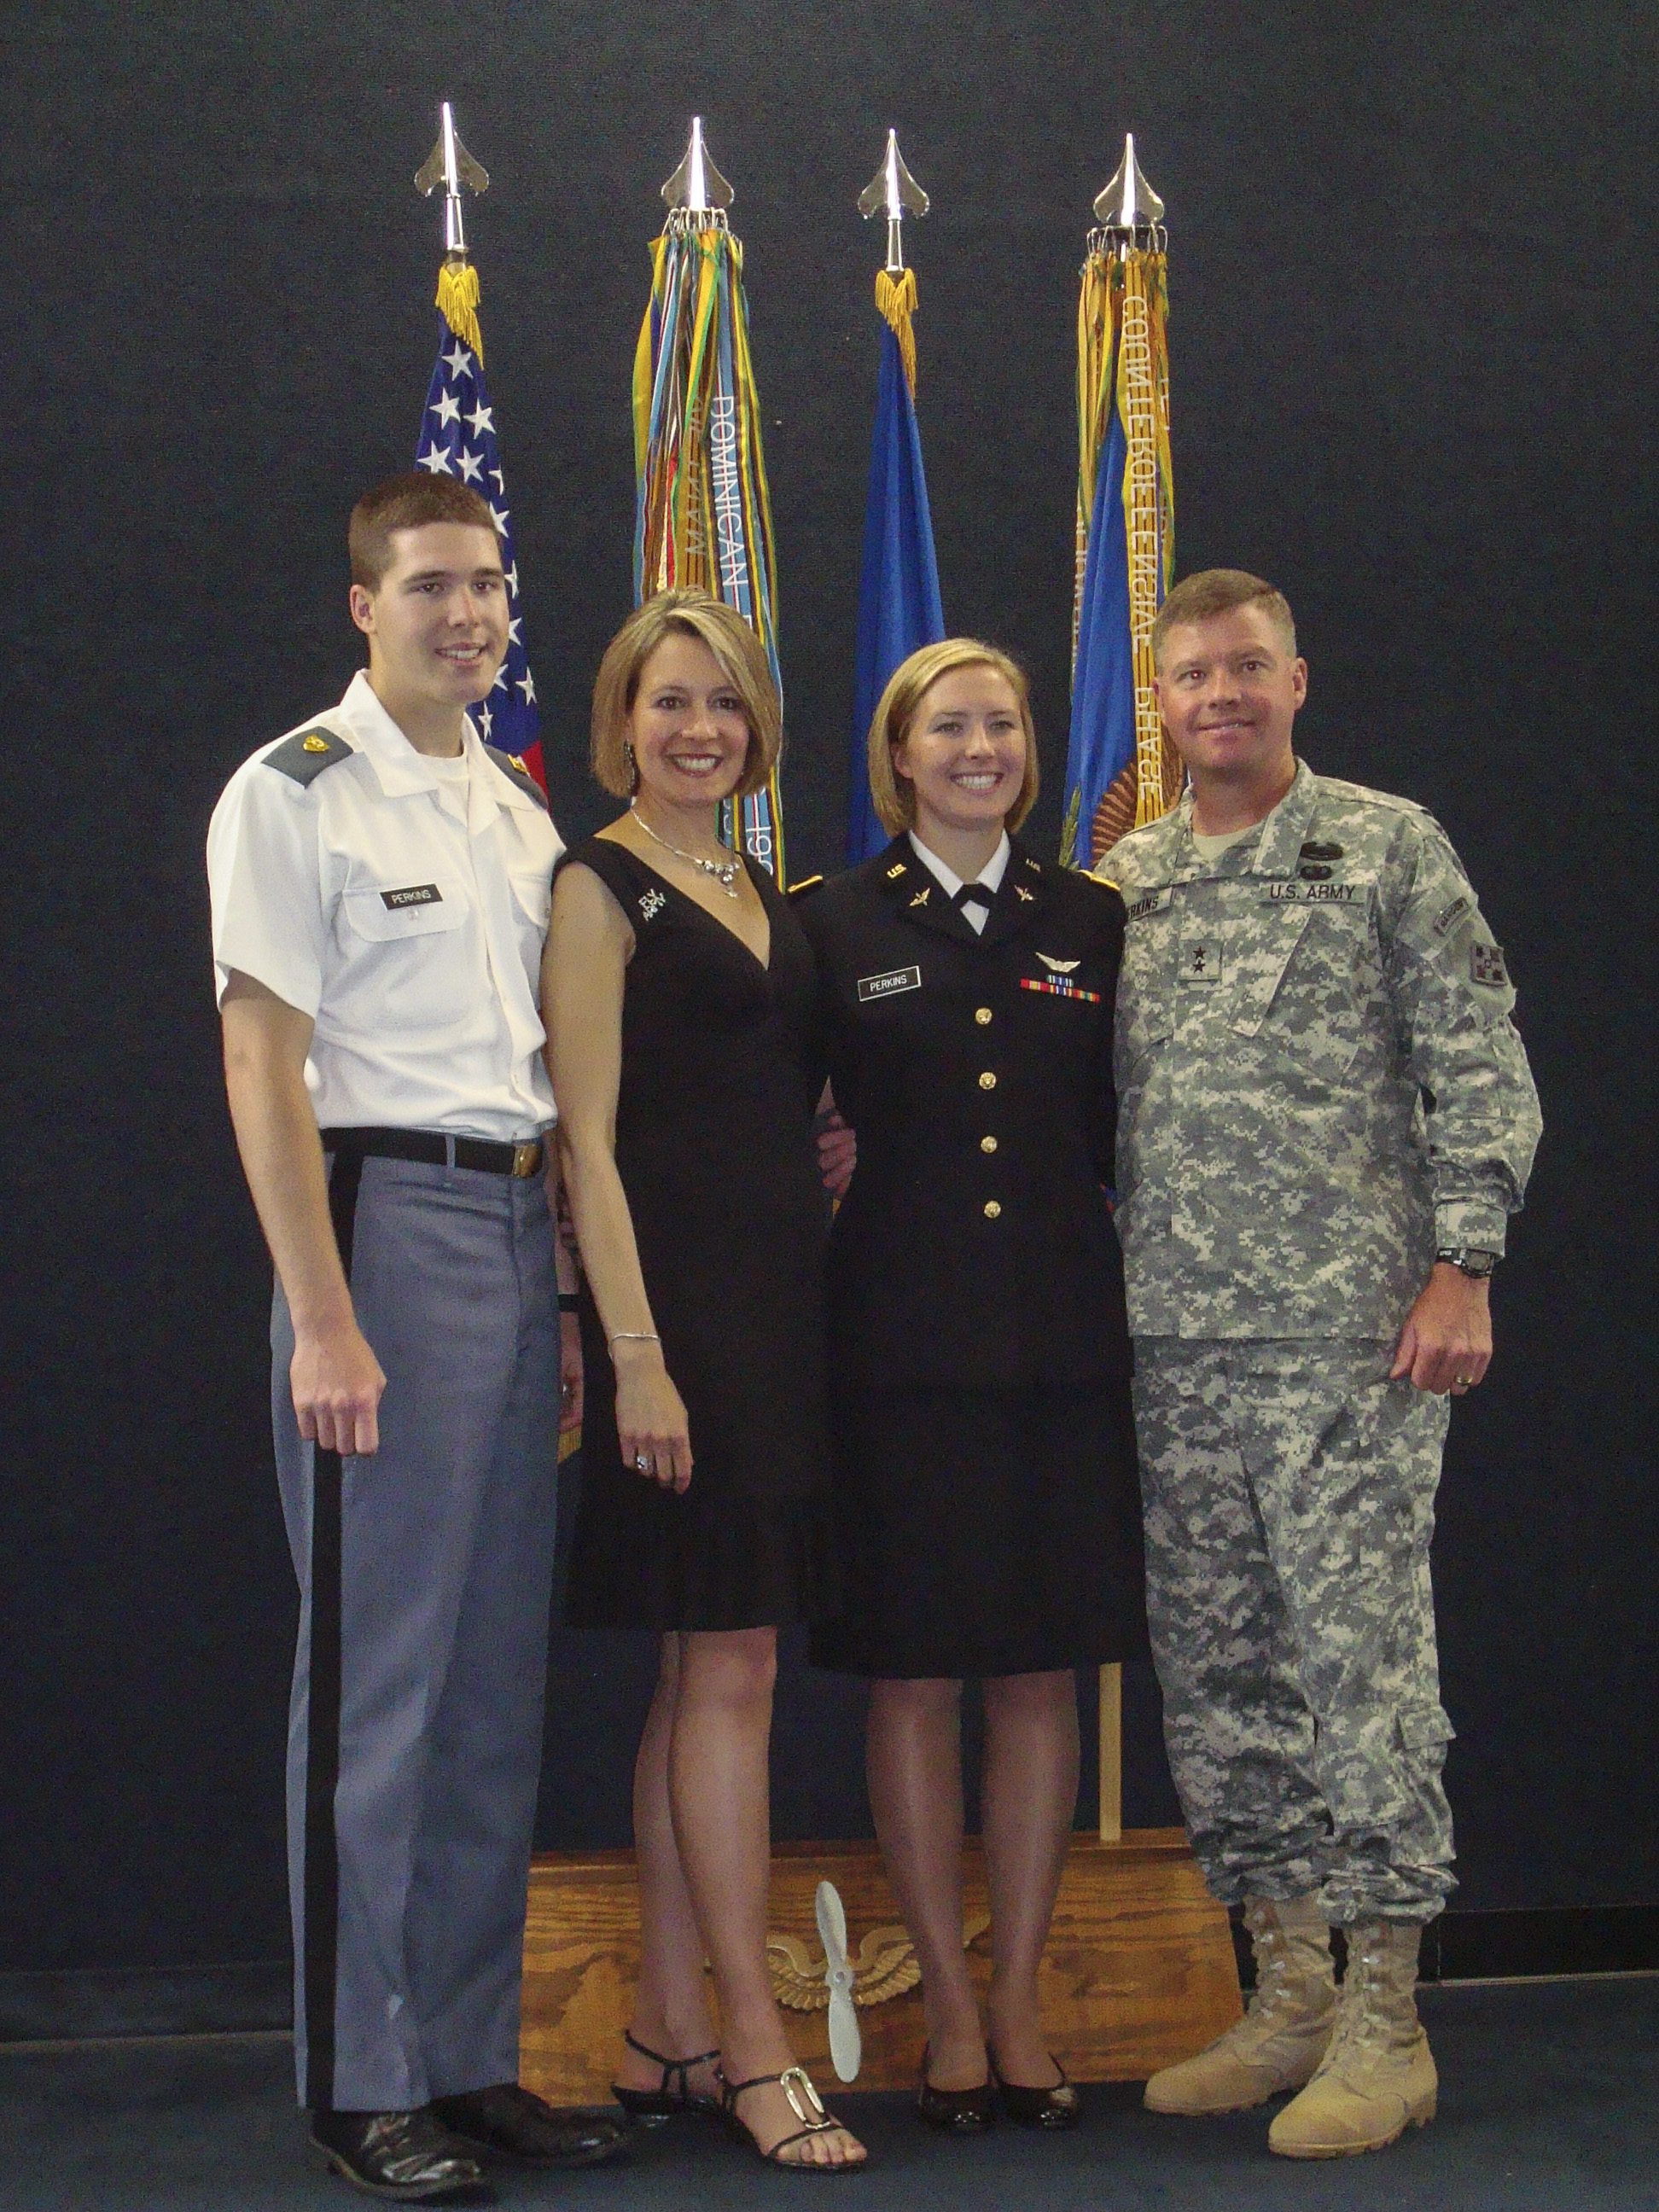 From left to right: USMA Cadet Chad Perkins, Mrs. Ginger Perkins, 1st Lt. Cassandra Perkins, and Maj. Gen. David Perkins, following 1st Lt. Perkins graduation from flight school at Fort Rucker in 2009.